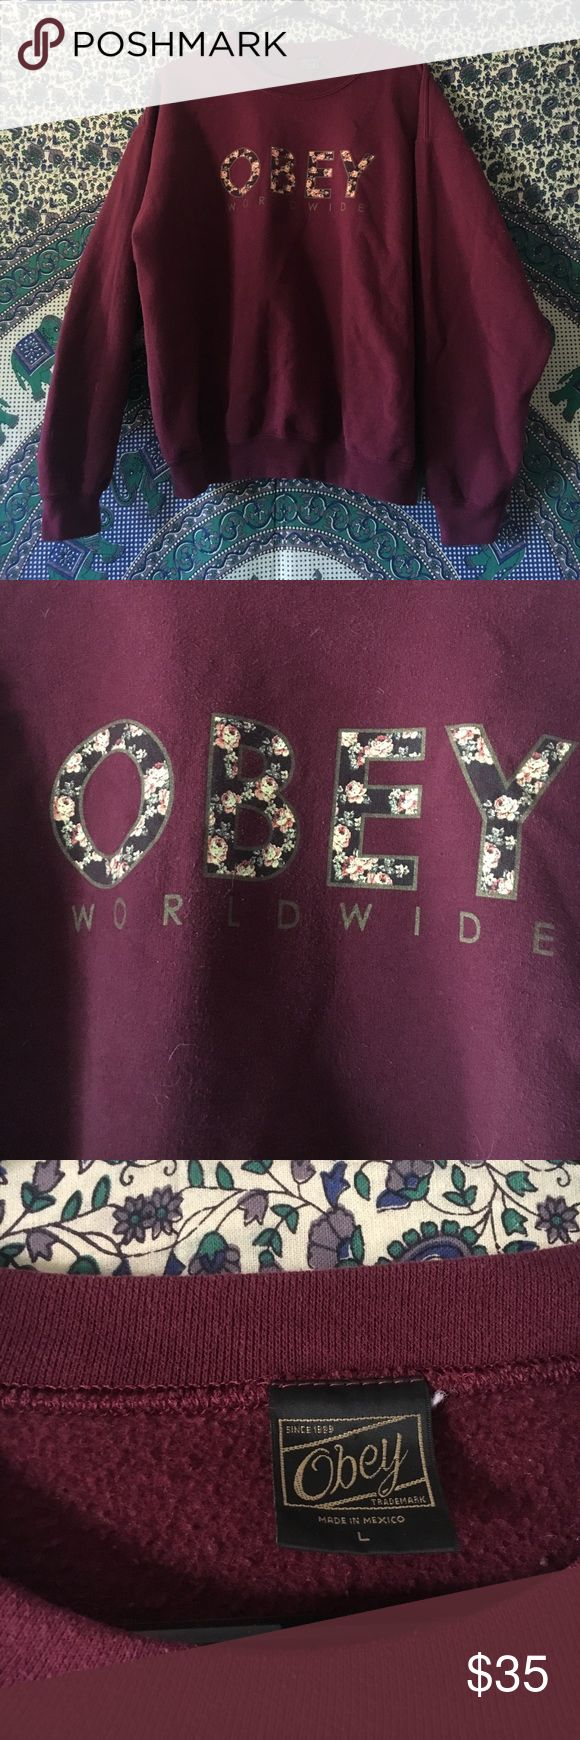 OBEY worldwide crewneck burgundy colored crewneck, perfect for upcoming fall weather & trends! floral print obey logo, slightly worn but still good as new😊 Obey Tops Sweatshirts & Hoodies